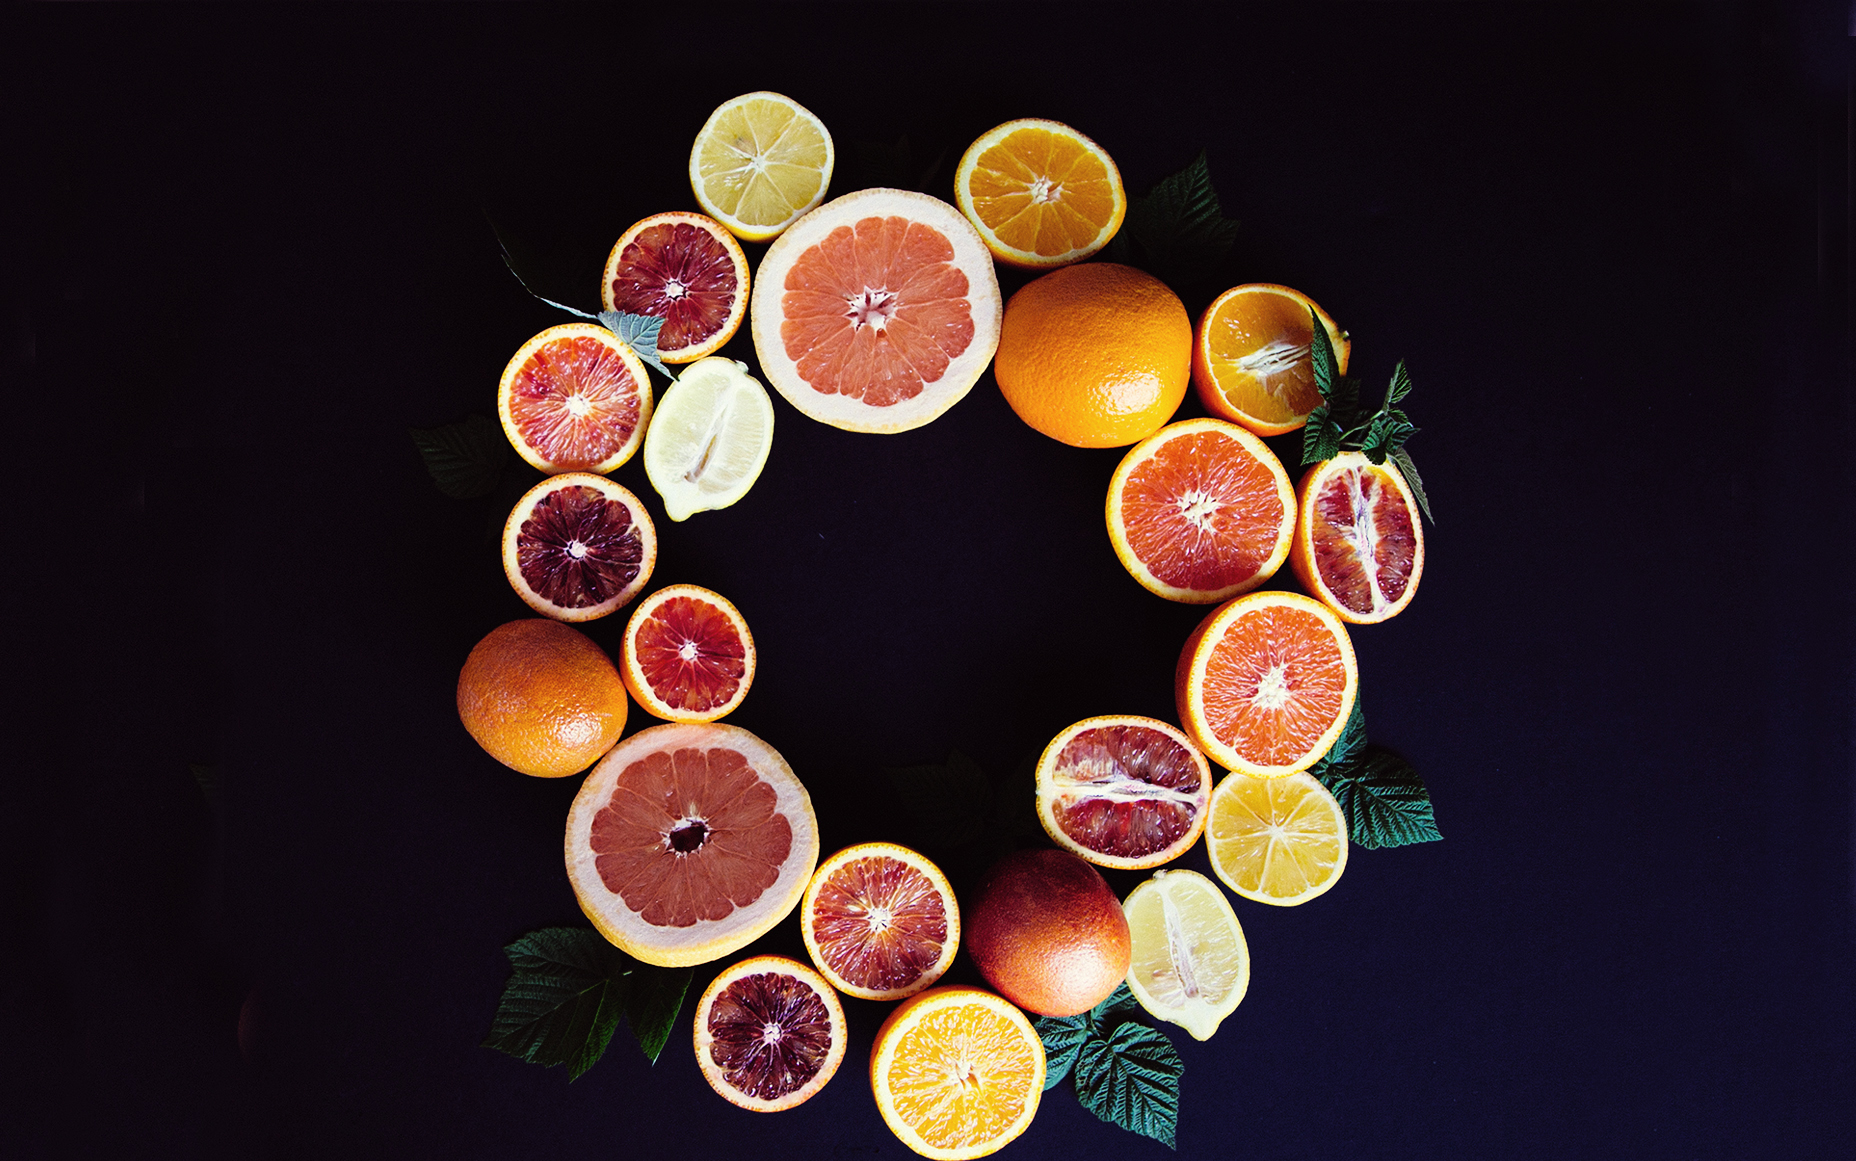 Citrus Wallpaper with Sunkist Growers   The Jungalow by Justina Blakeney